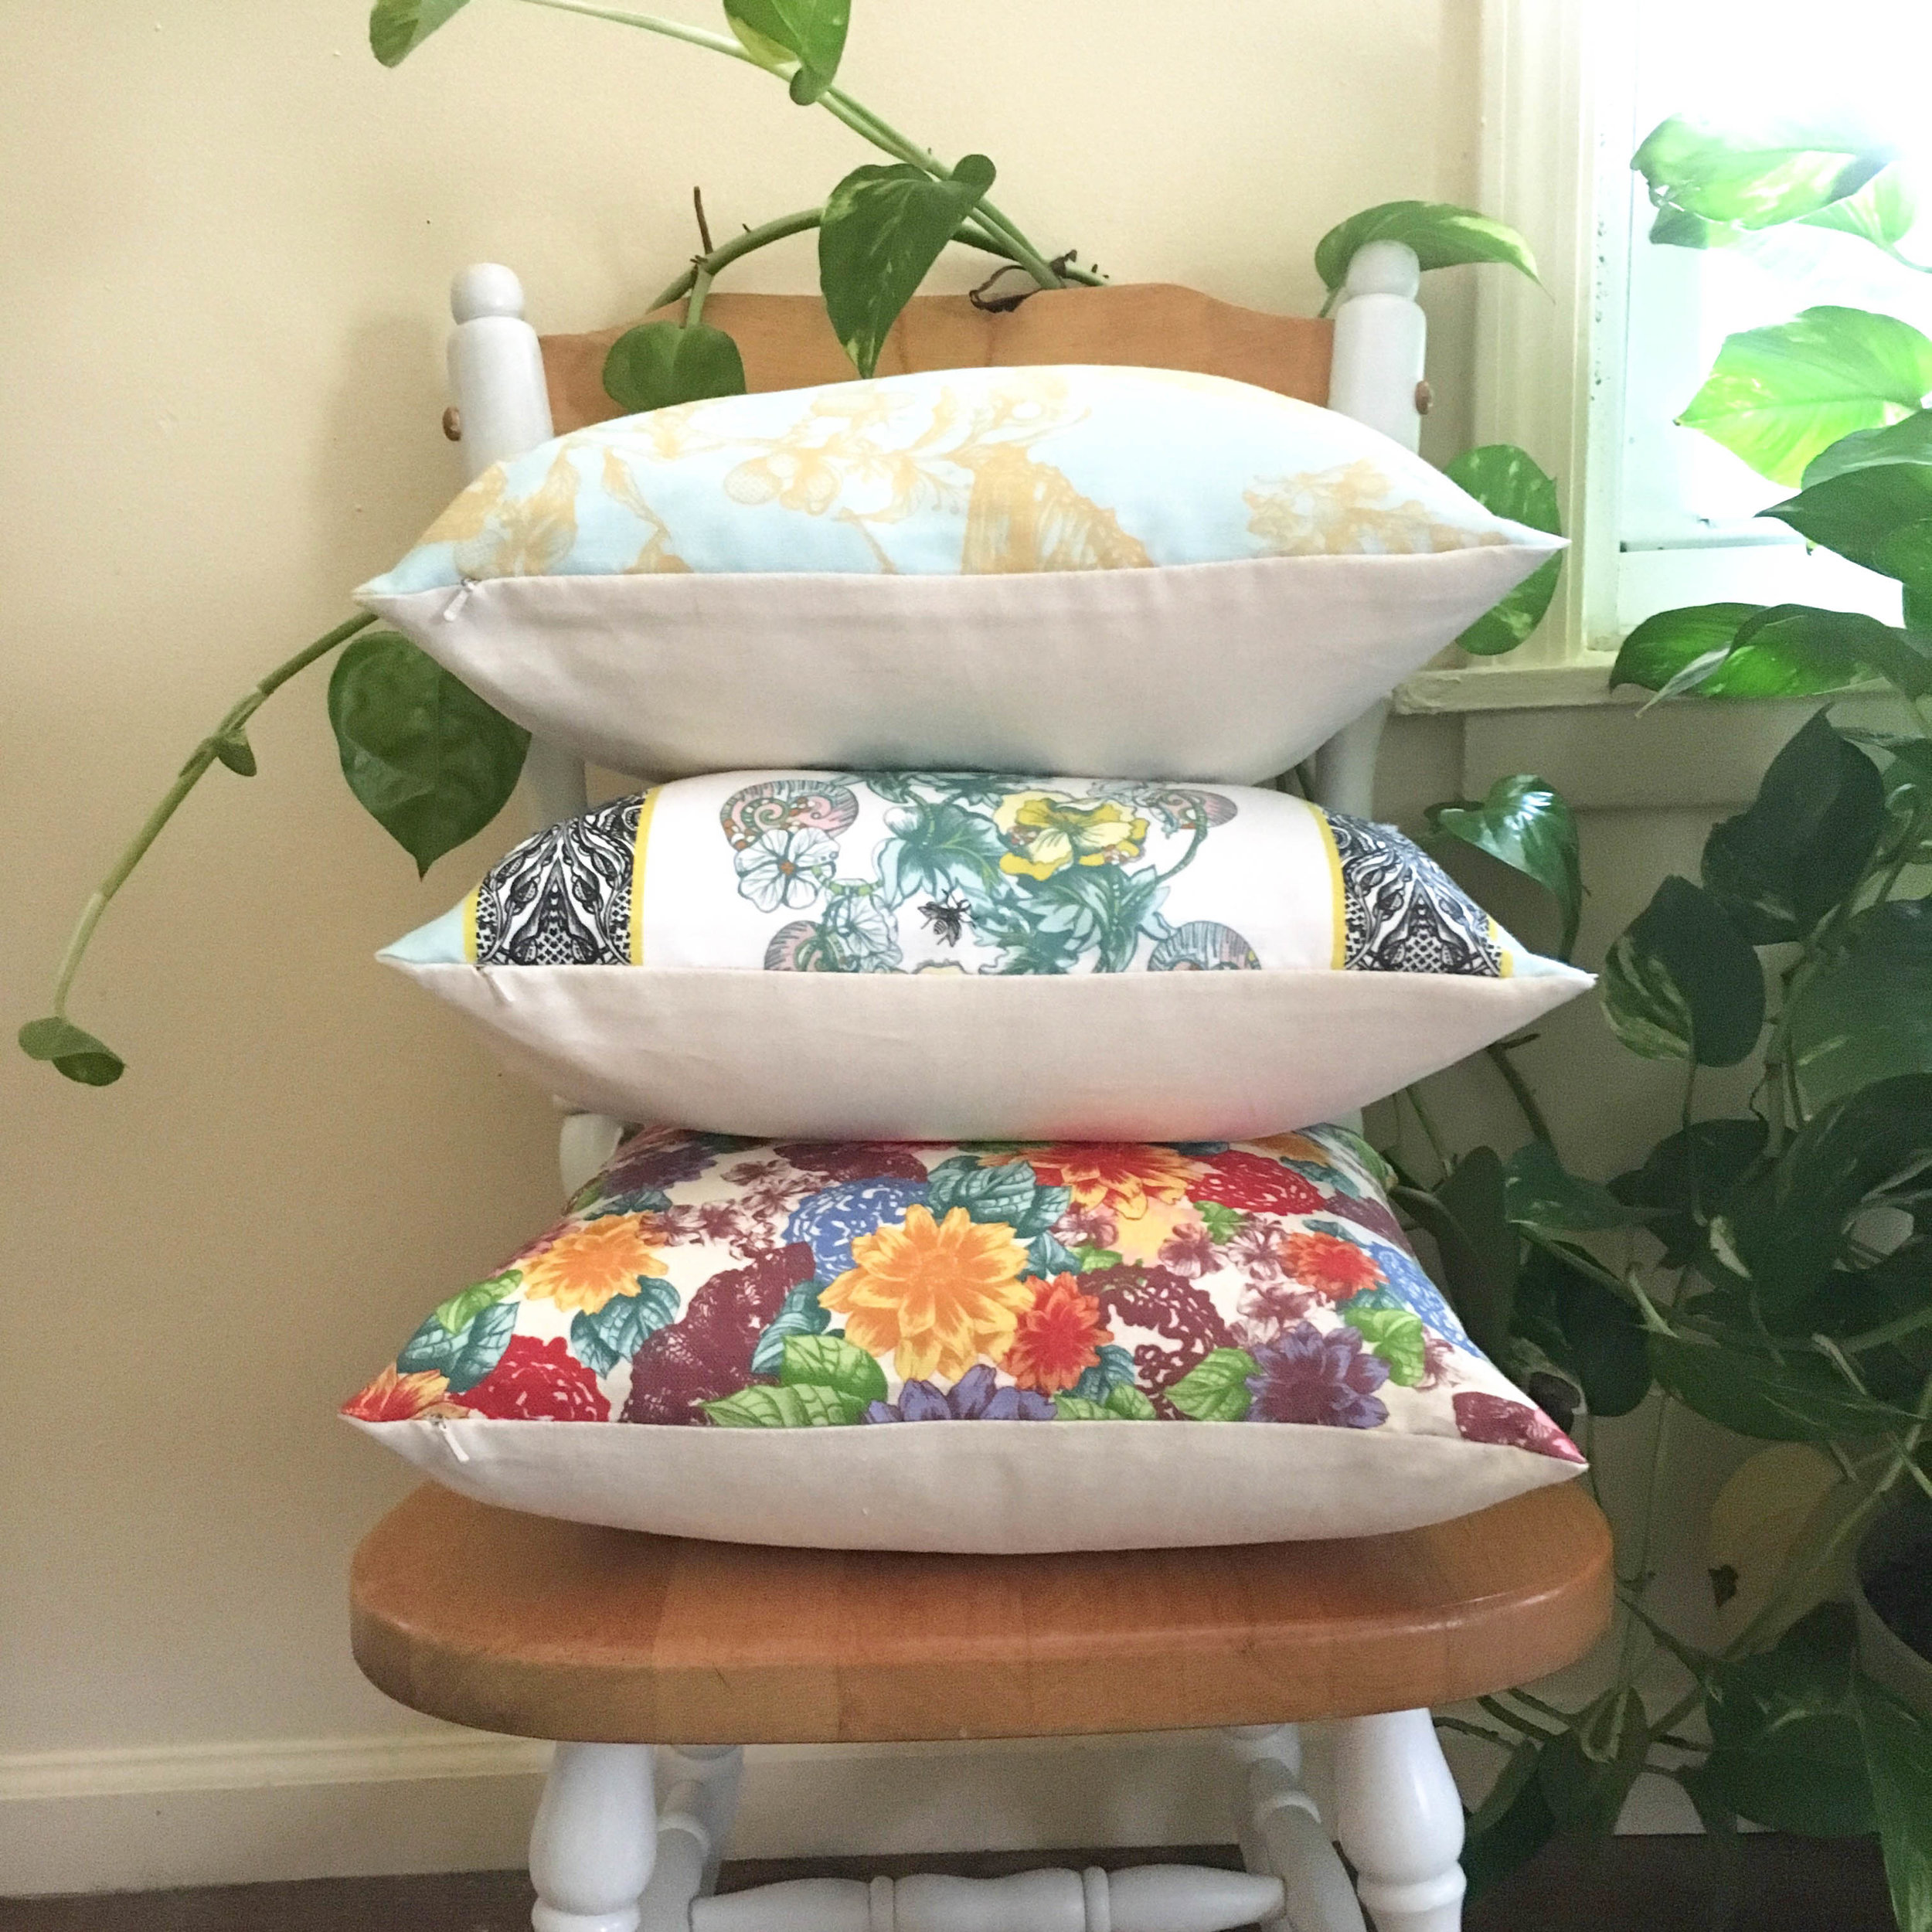 Sustainably made home decor pillow trio stacked on wooden chair next to plant